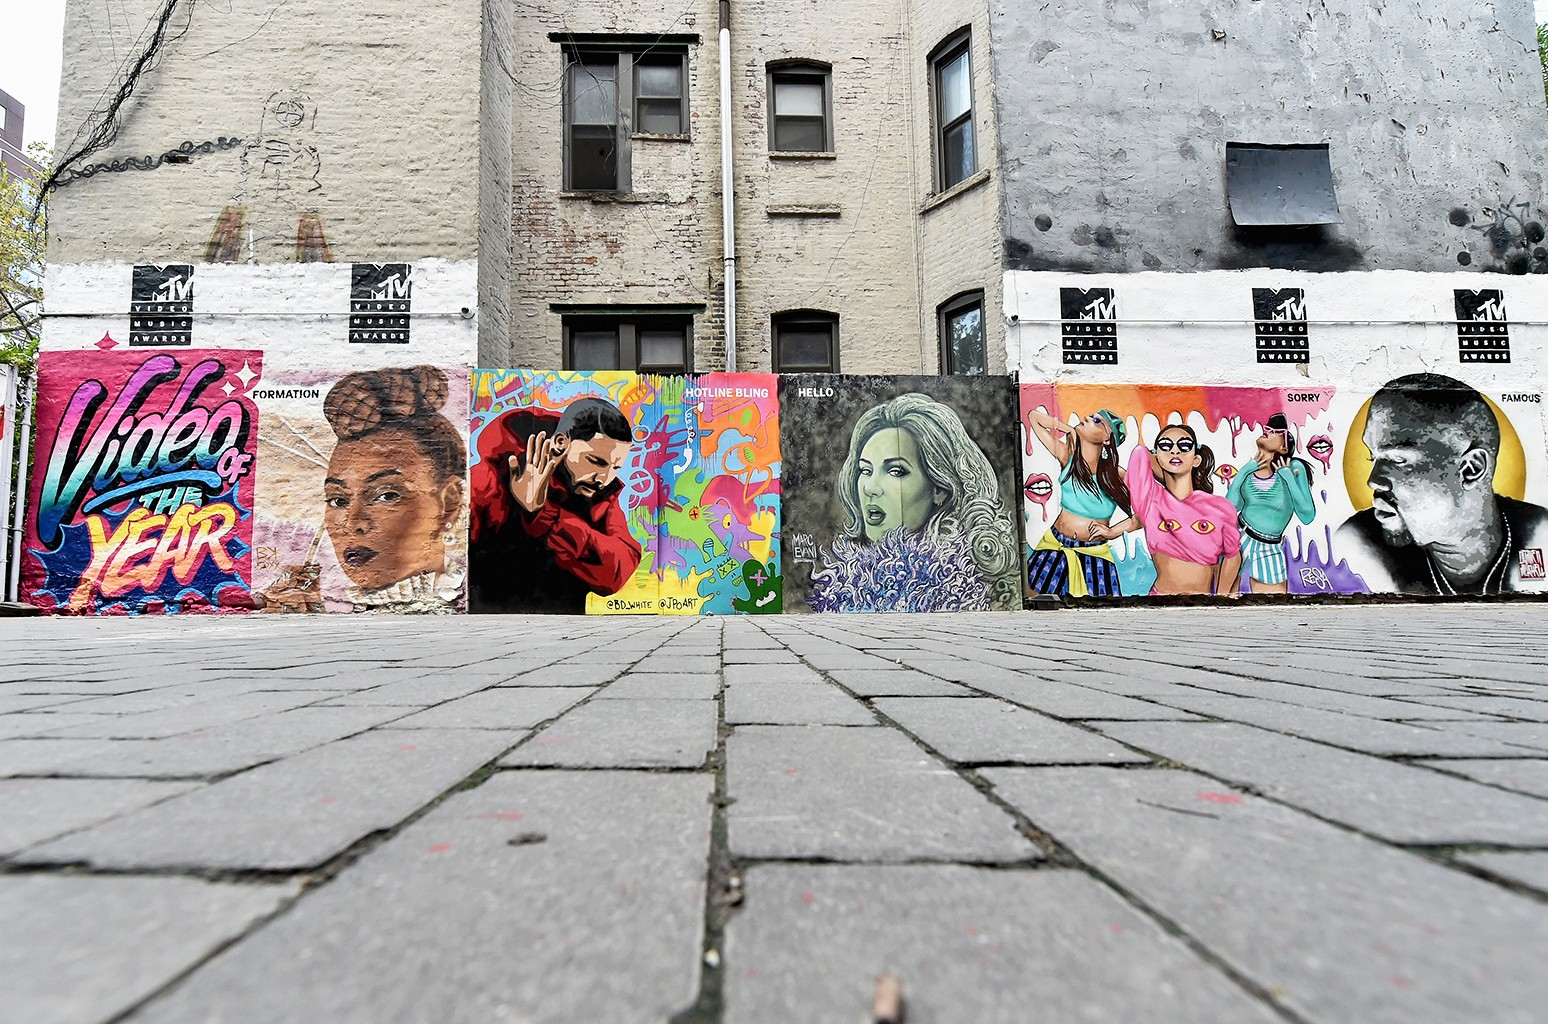 """MTV Video Music Awards """"Video of the Year"""" nominees mural"""